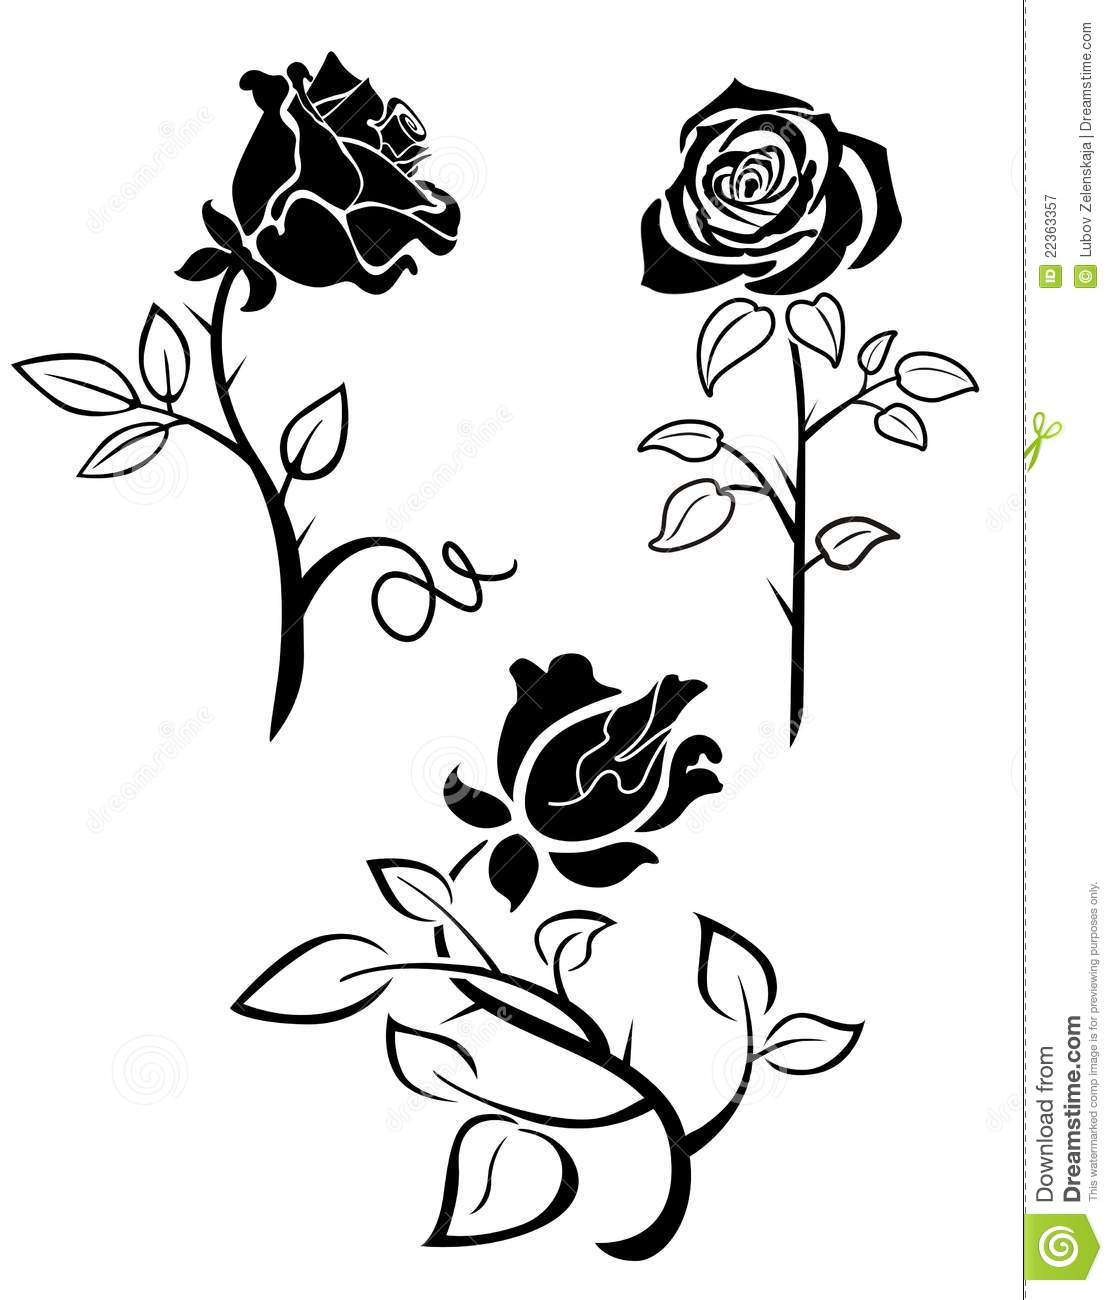 Rose Silhouette Royalty Free Stock Photography